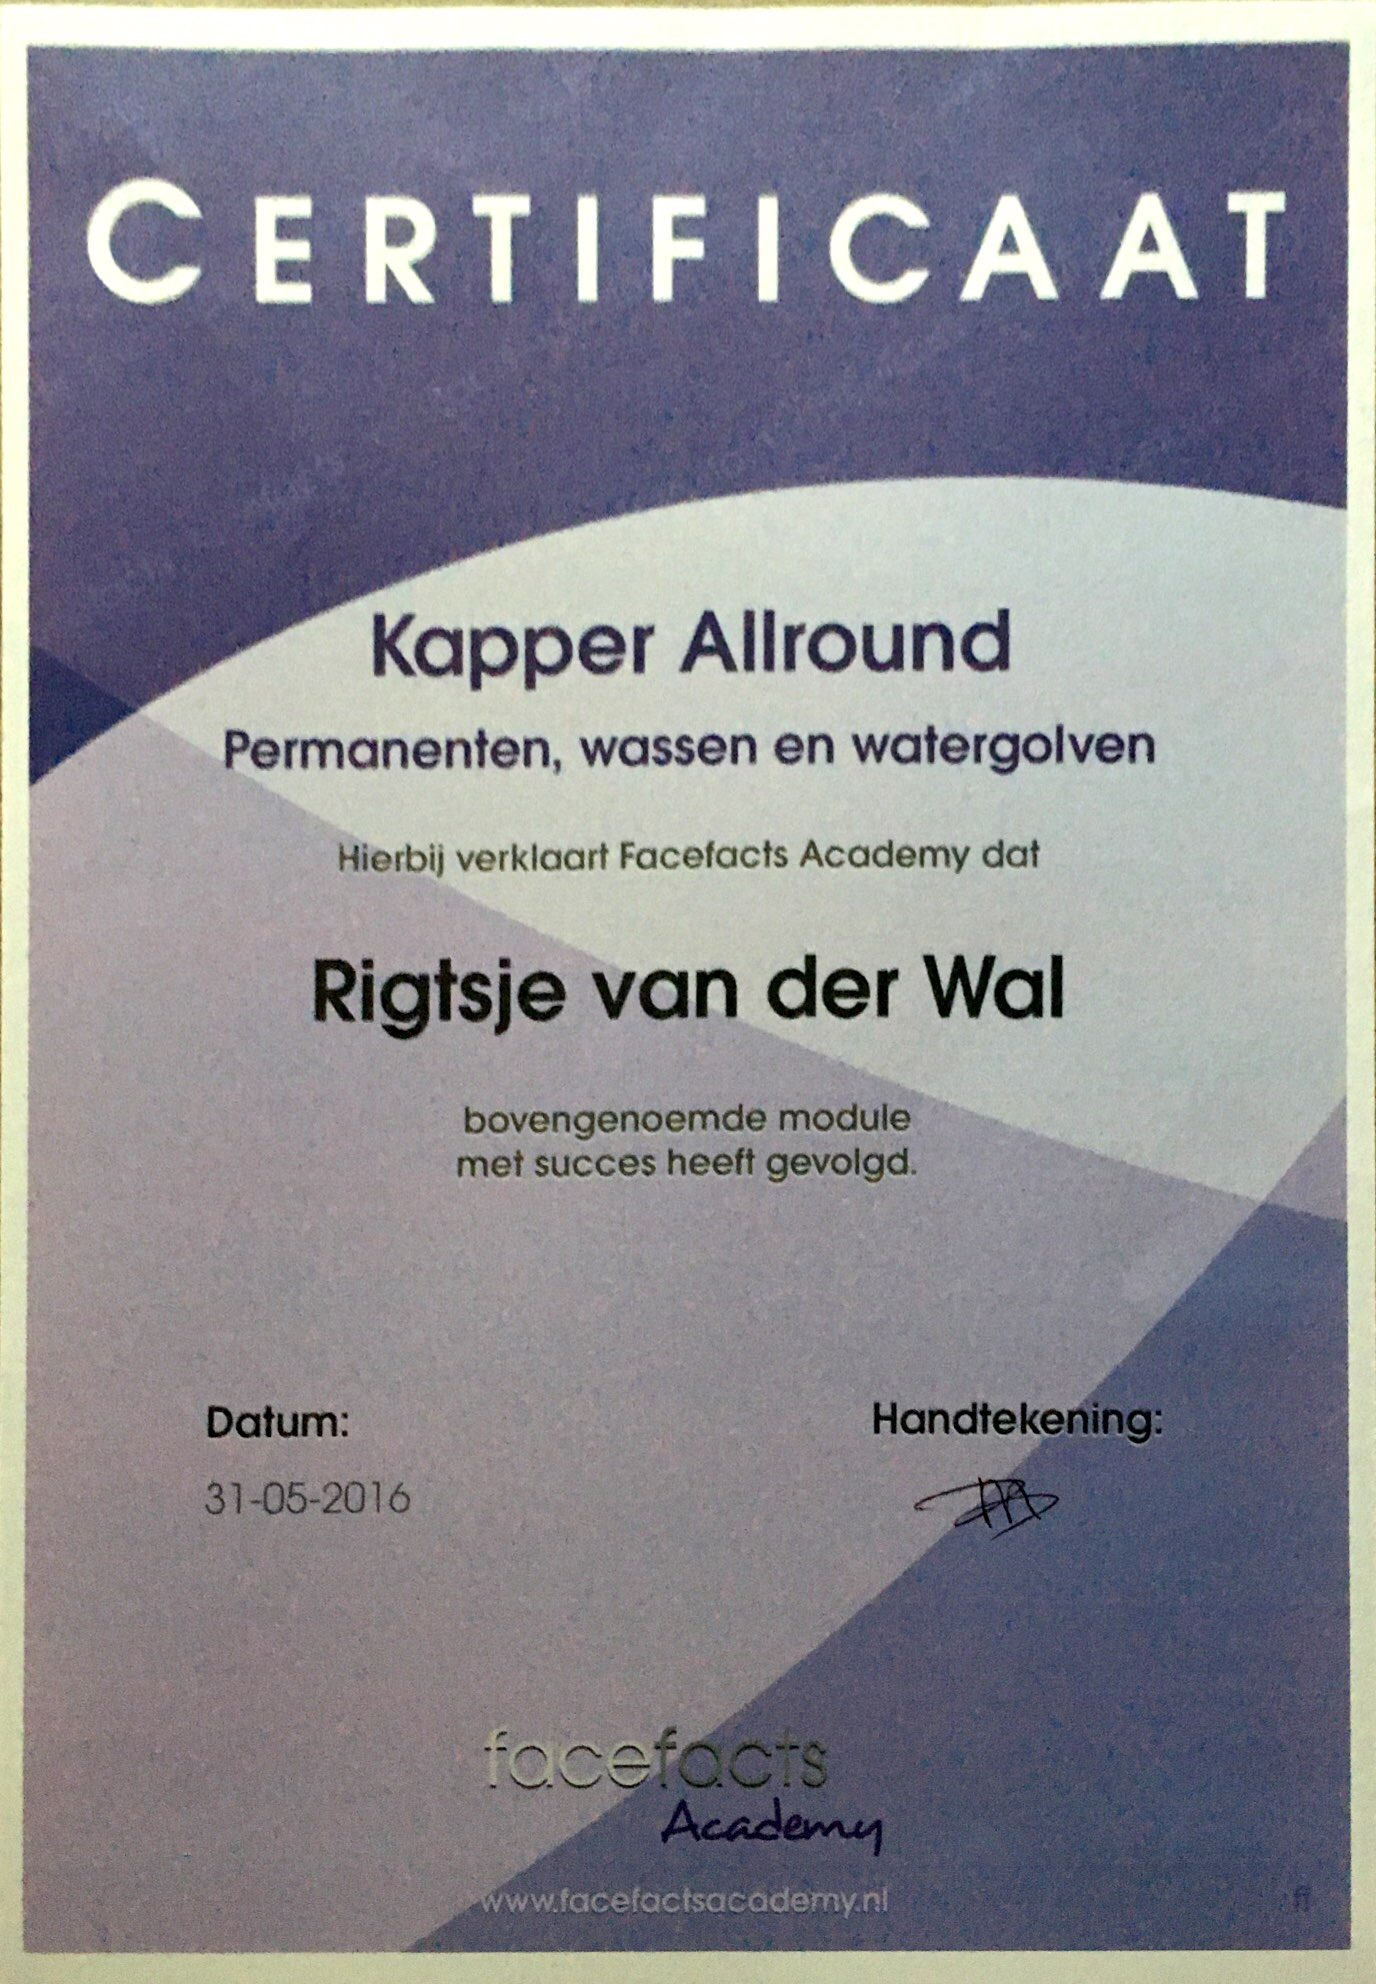 Kapper Allround Permanenten, wassen en watergolven